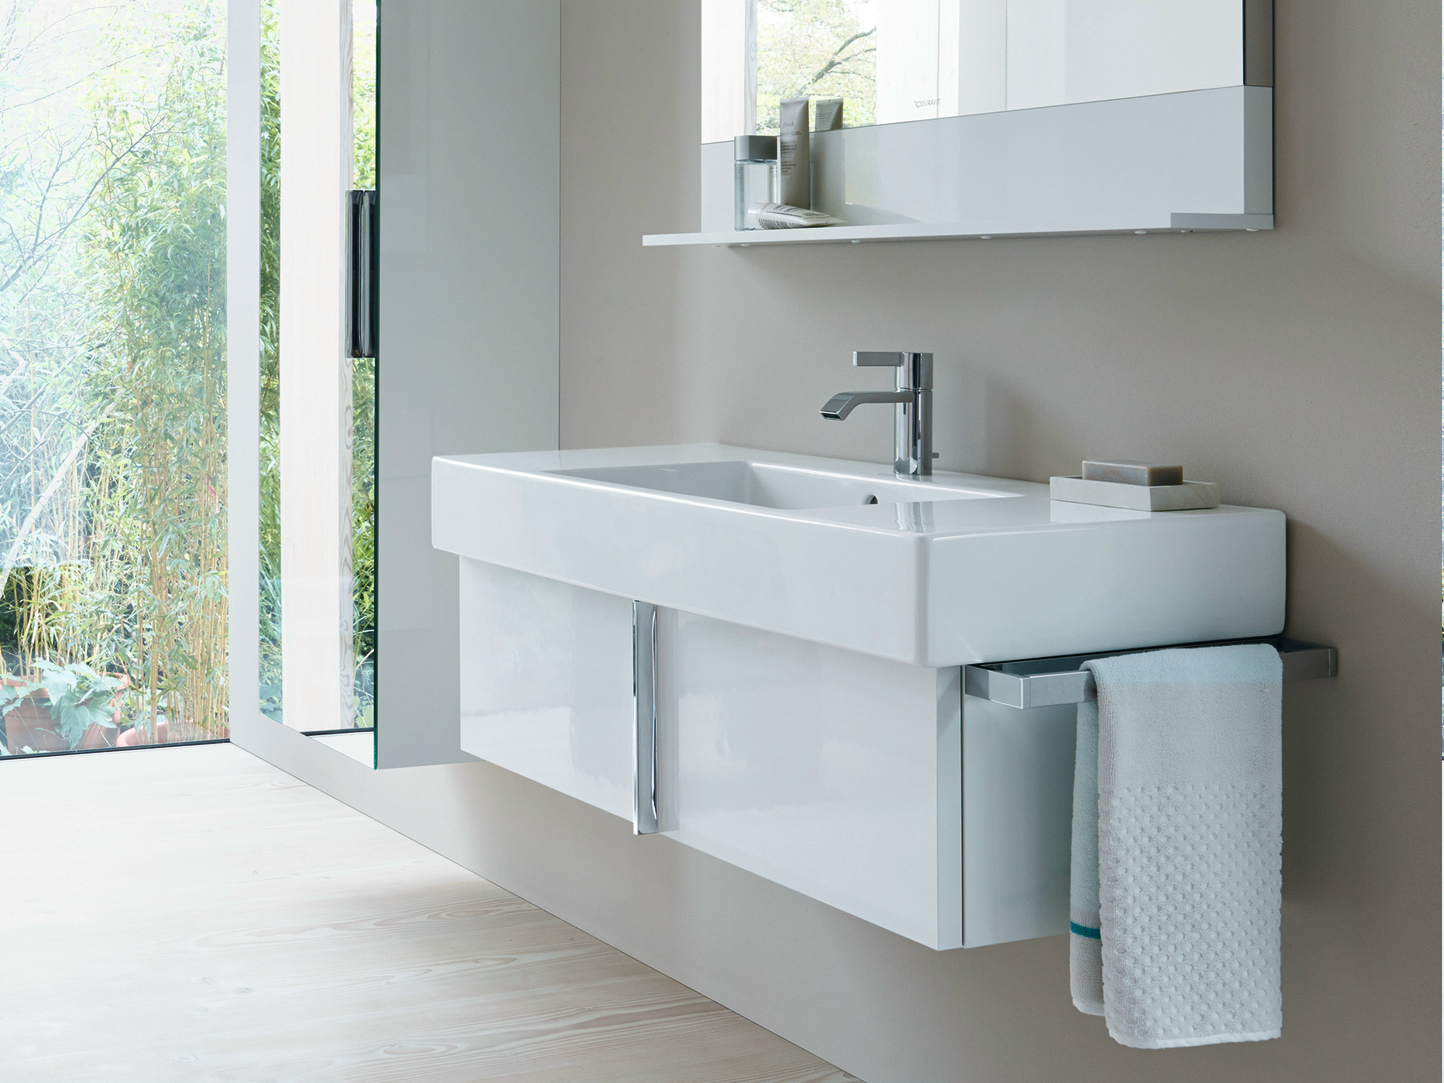 VERO | Single vanity unit By Duravit design Kurt Merki Jr.